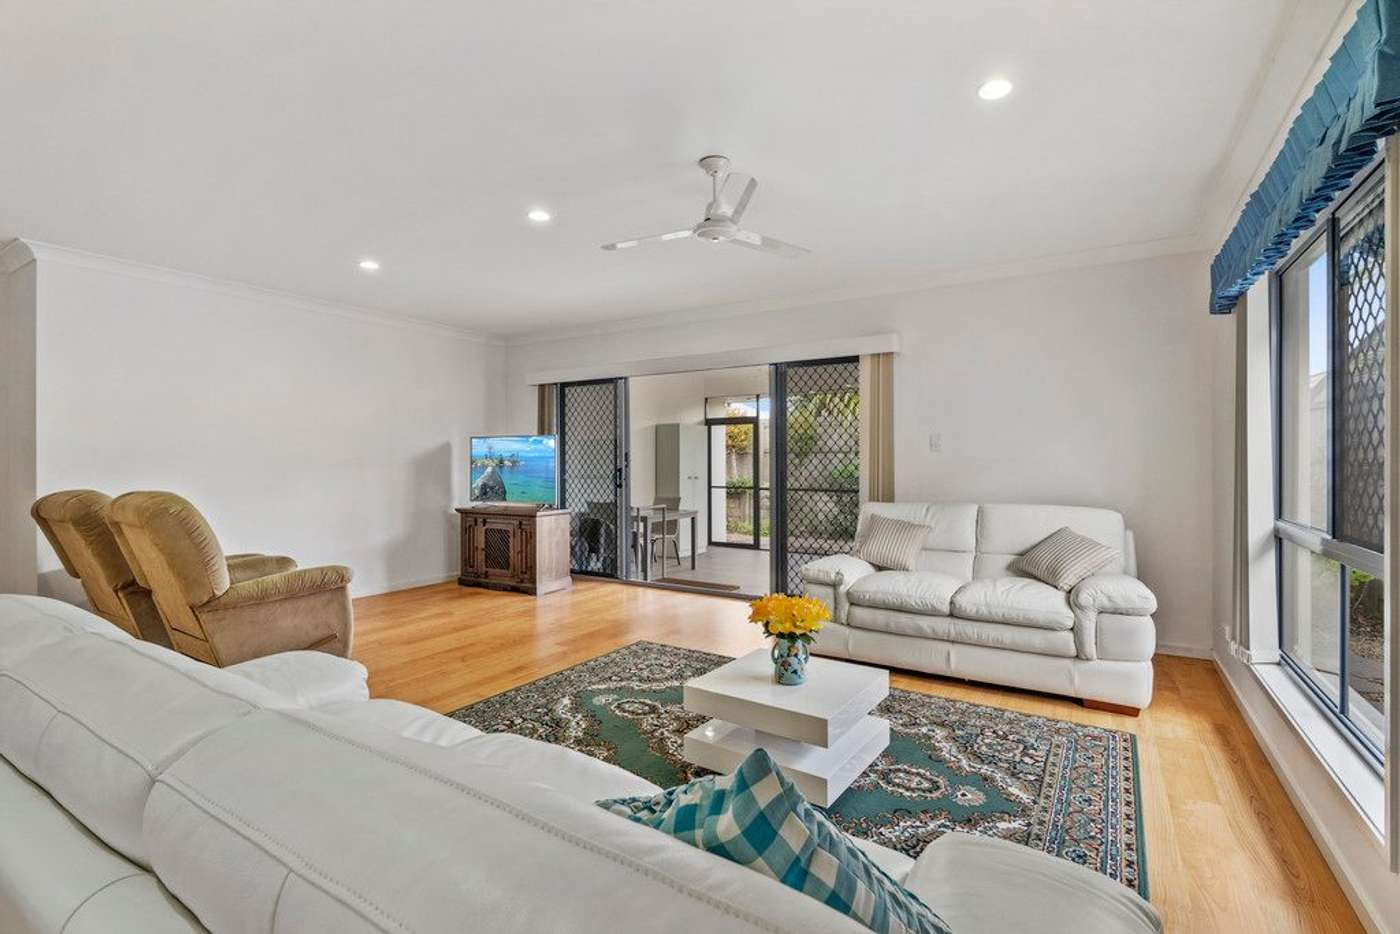 Sixth view of Homely house listing, 3 Crenshaw Place, Peregian Springs QLD 4573